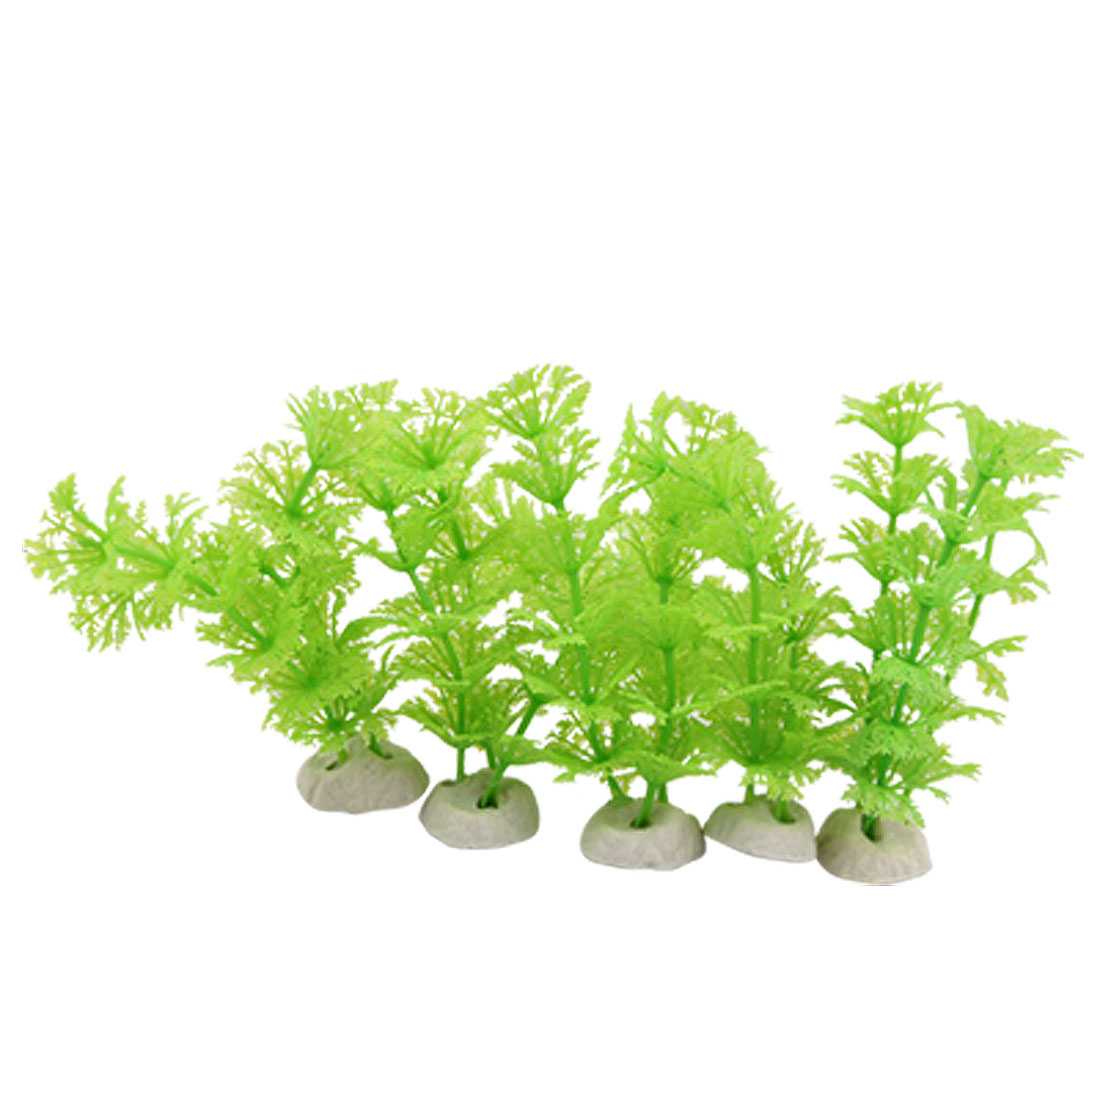 5PCS White Ceramic Base Green Plastic Grass Fish Tank Ornament